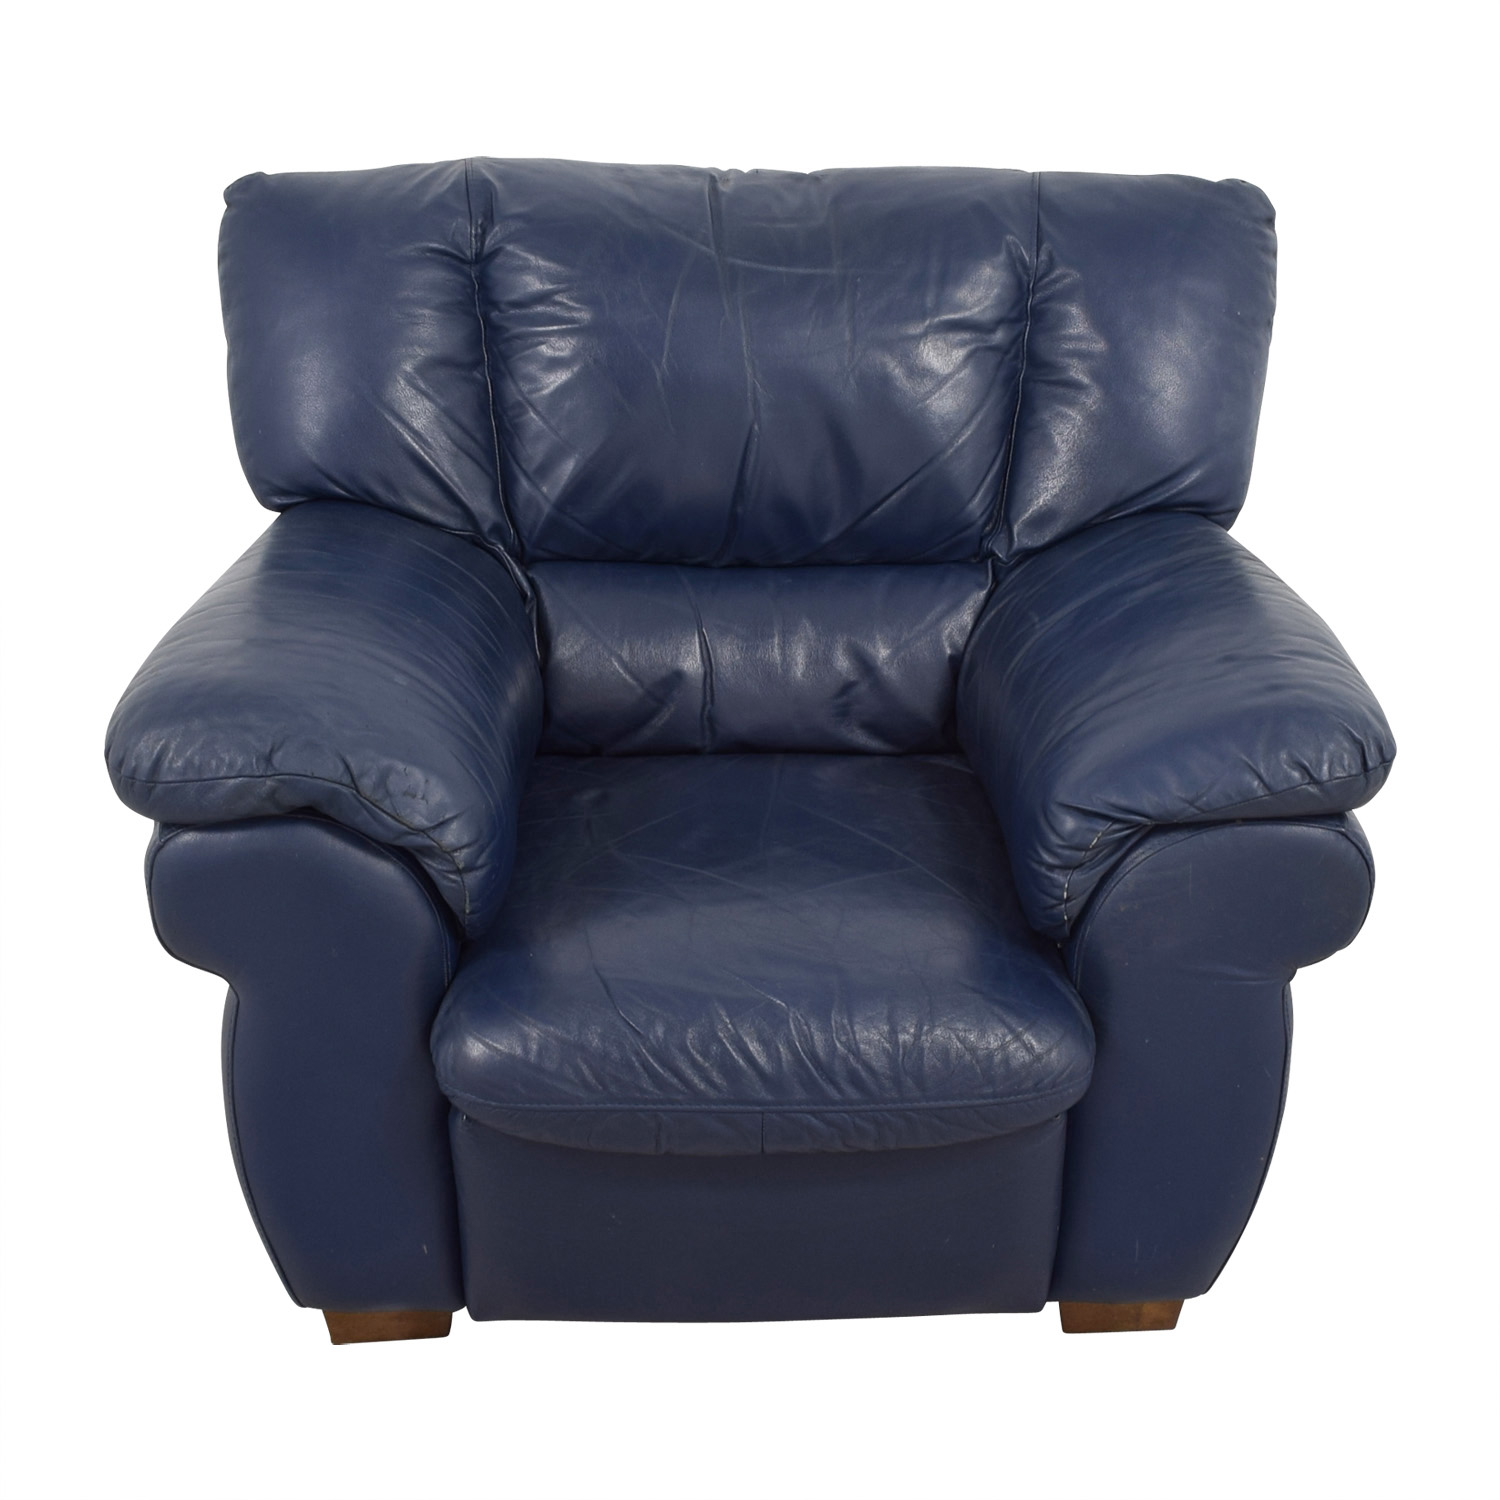 Italian Sofa Chairs 90 Off Macy 39s Macy 39s Navy Blue Leather Sofa Chair Chairs